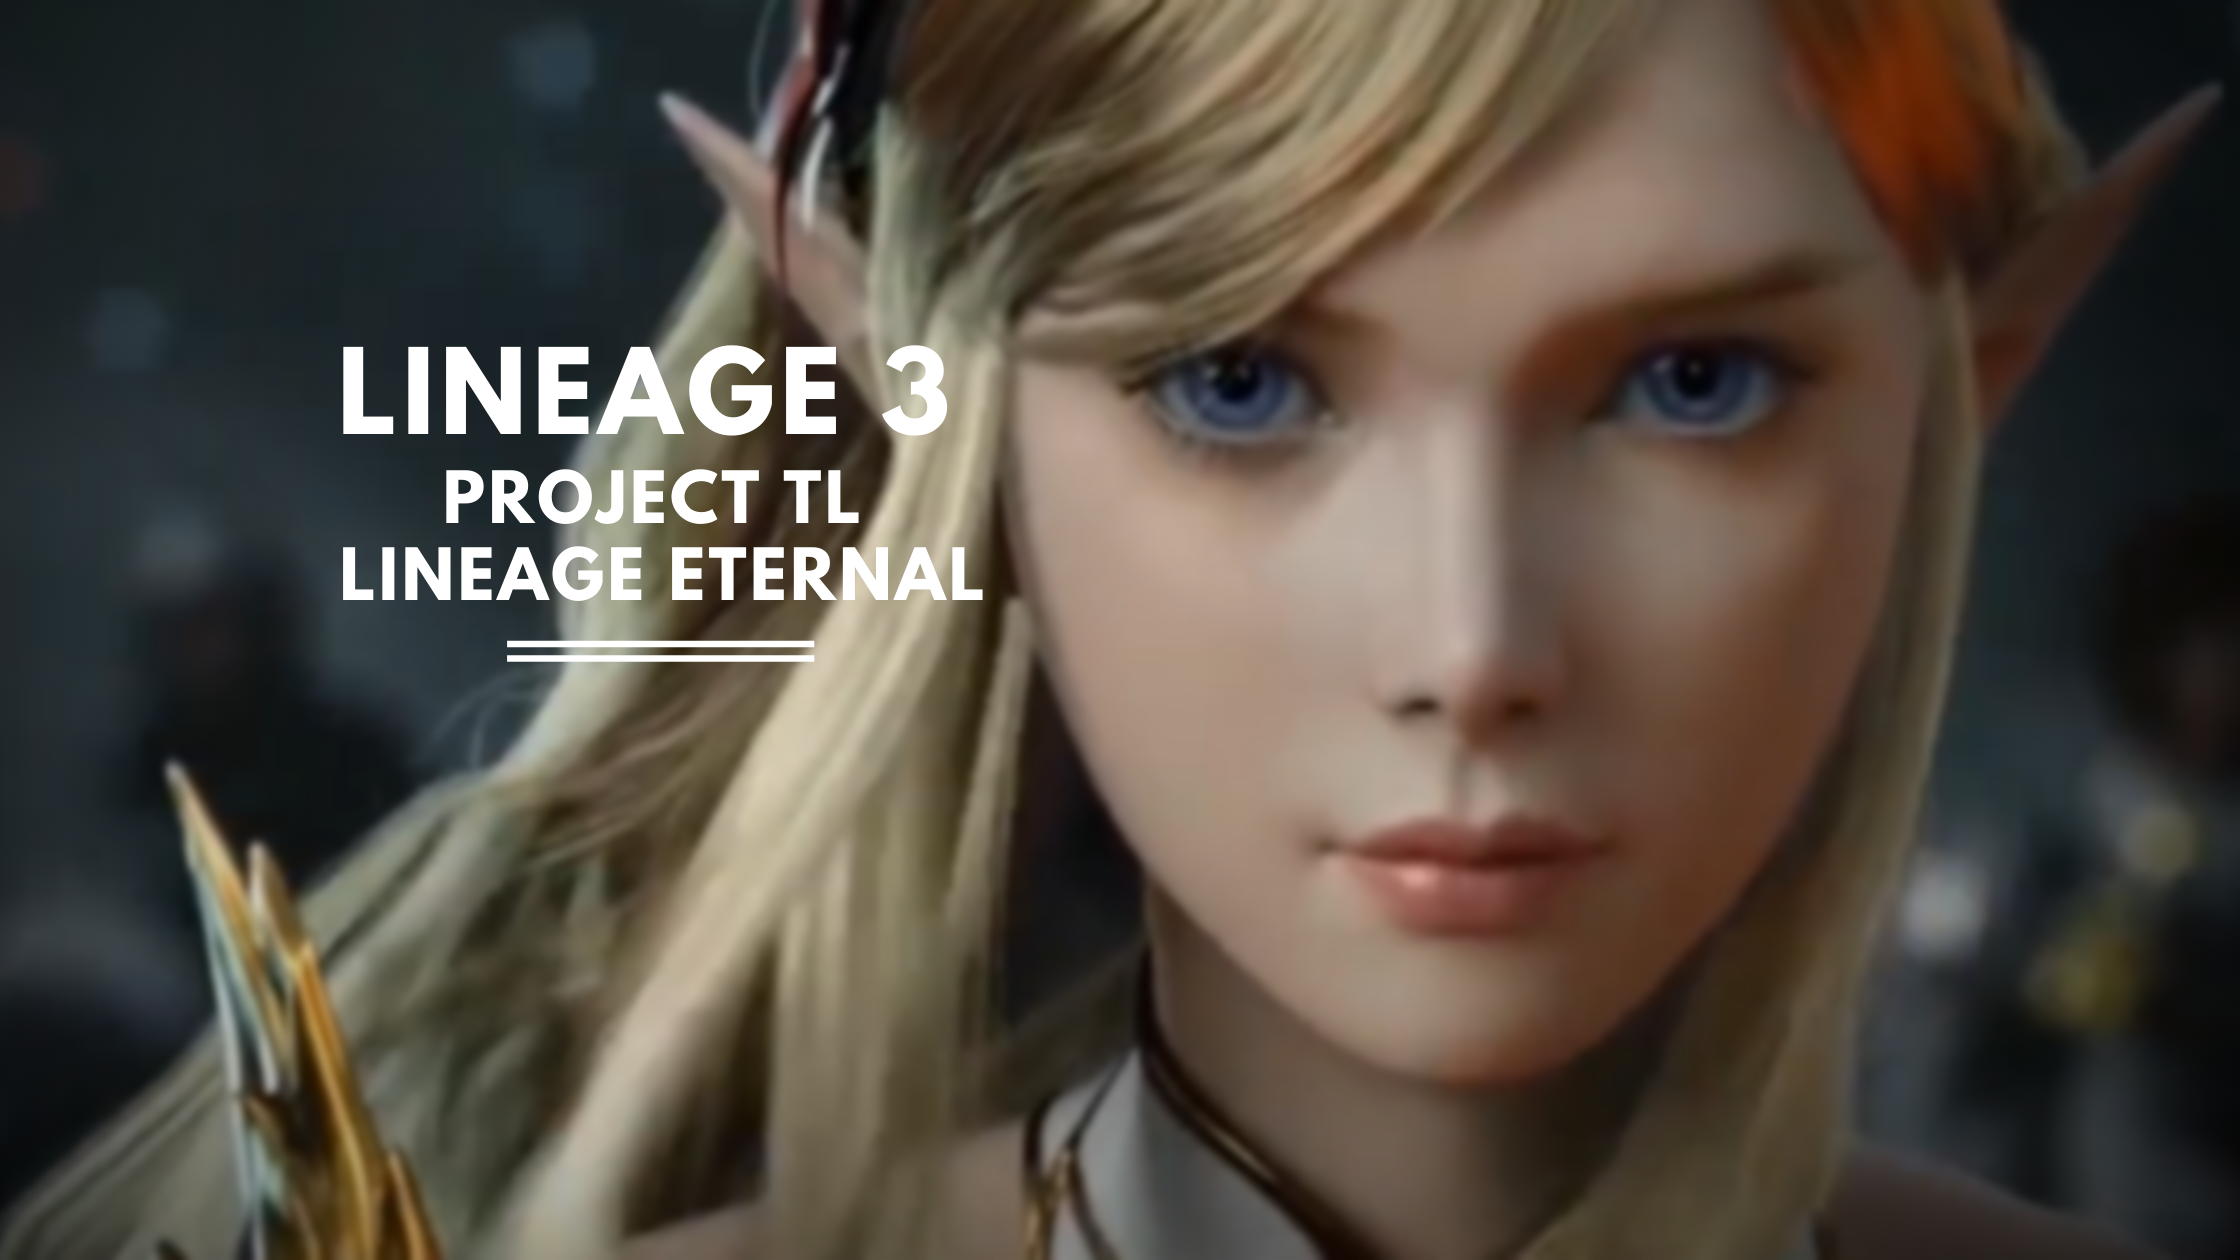 Lineage 3 Project TL, Lineage Eternal